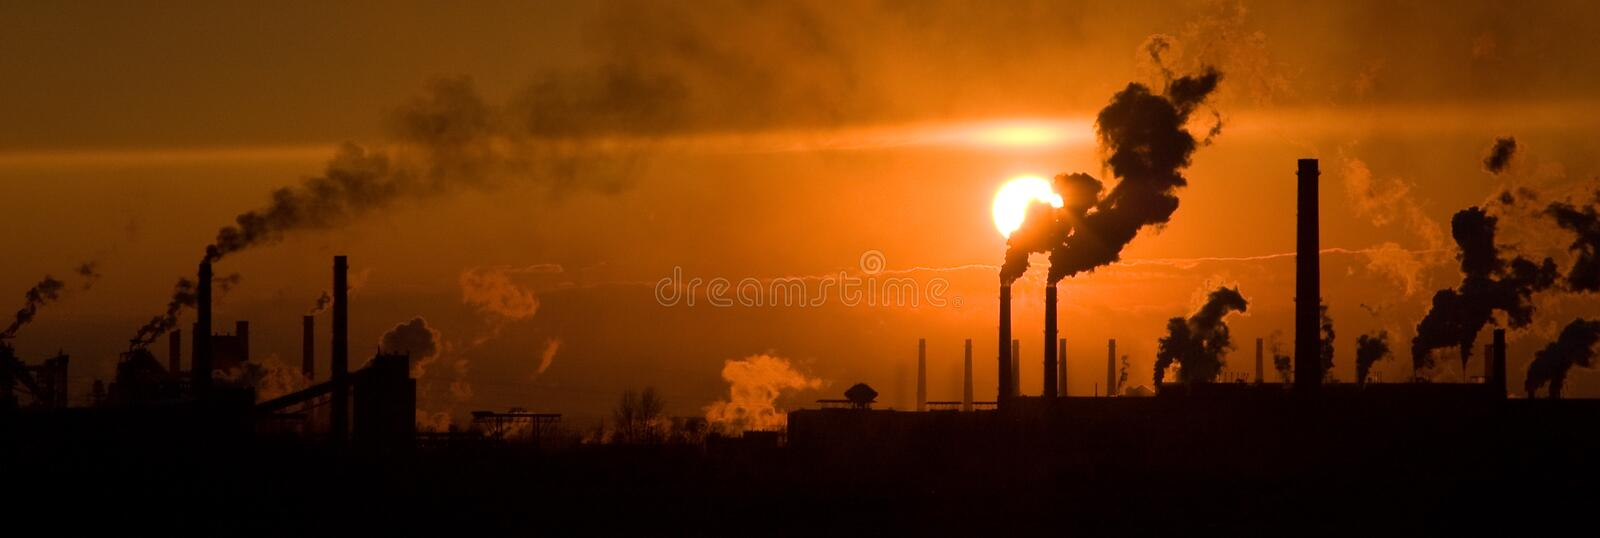 Industriell stockfoto